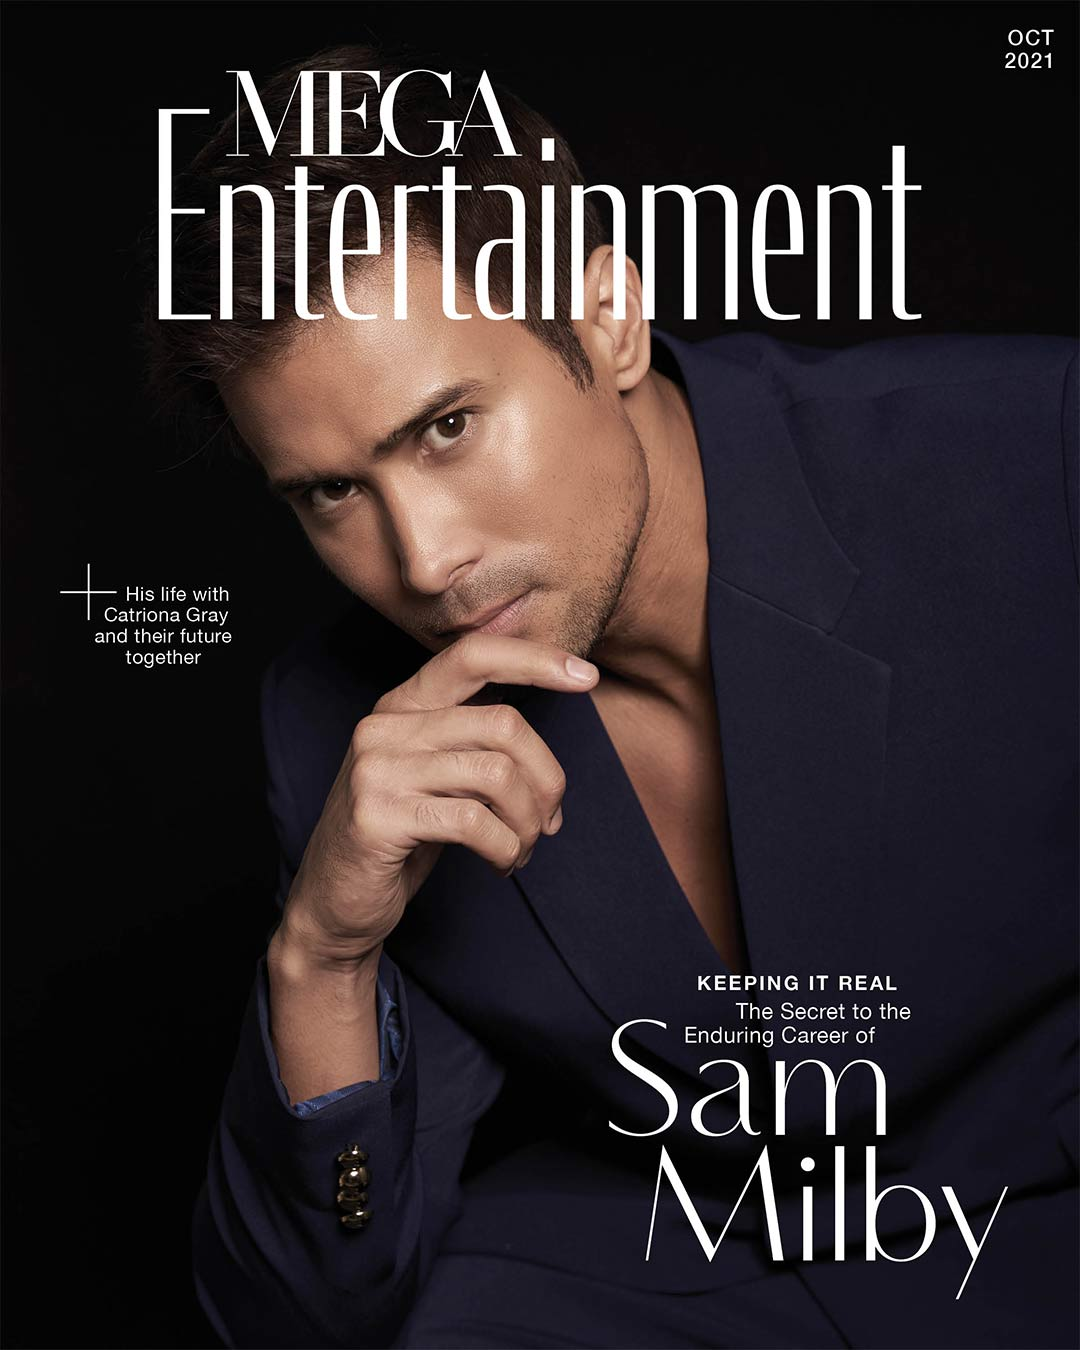 15-Year Success: Sam Milby Looks Back On His Memorable Roles